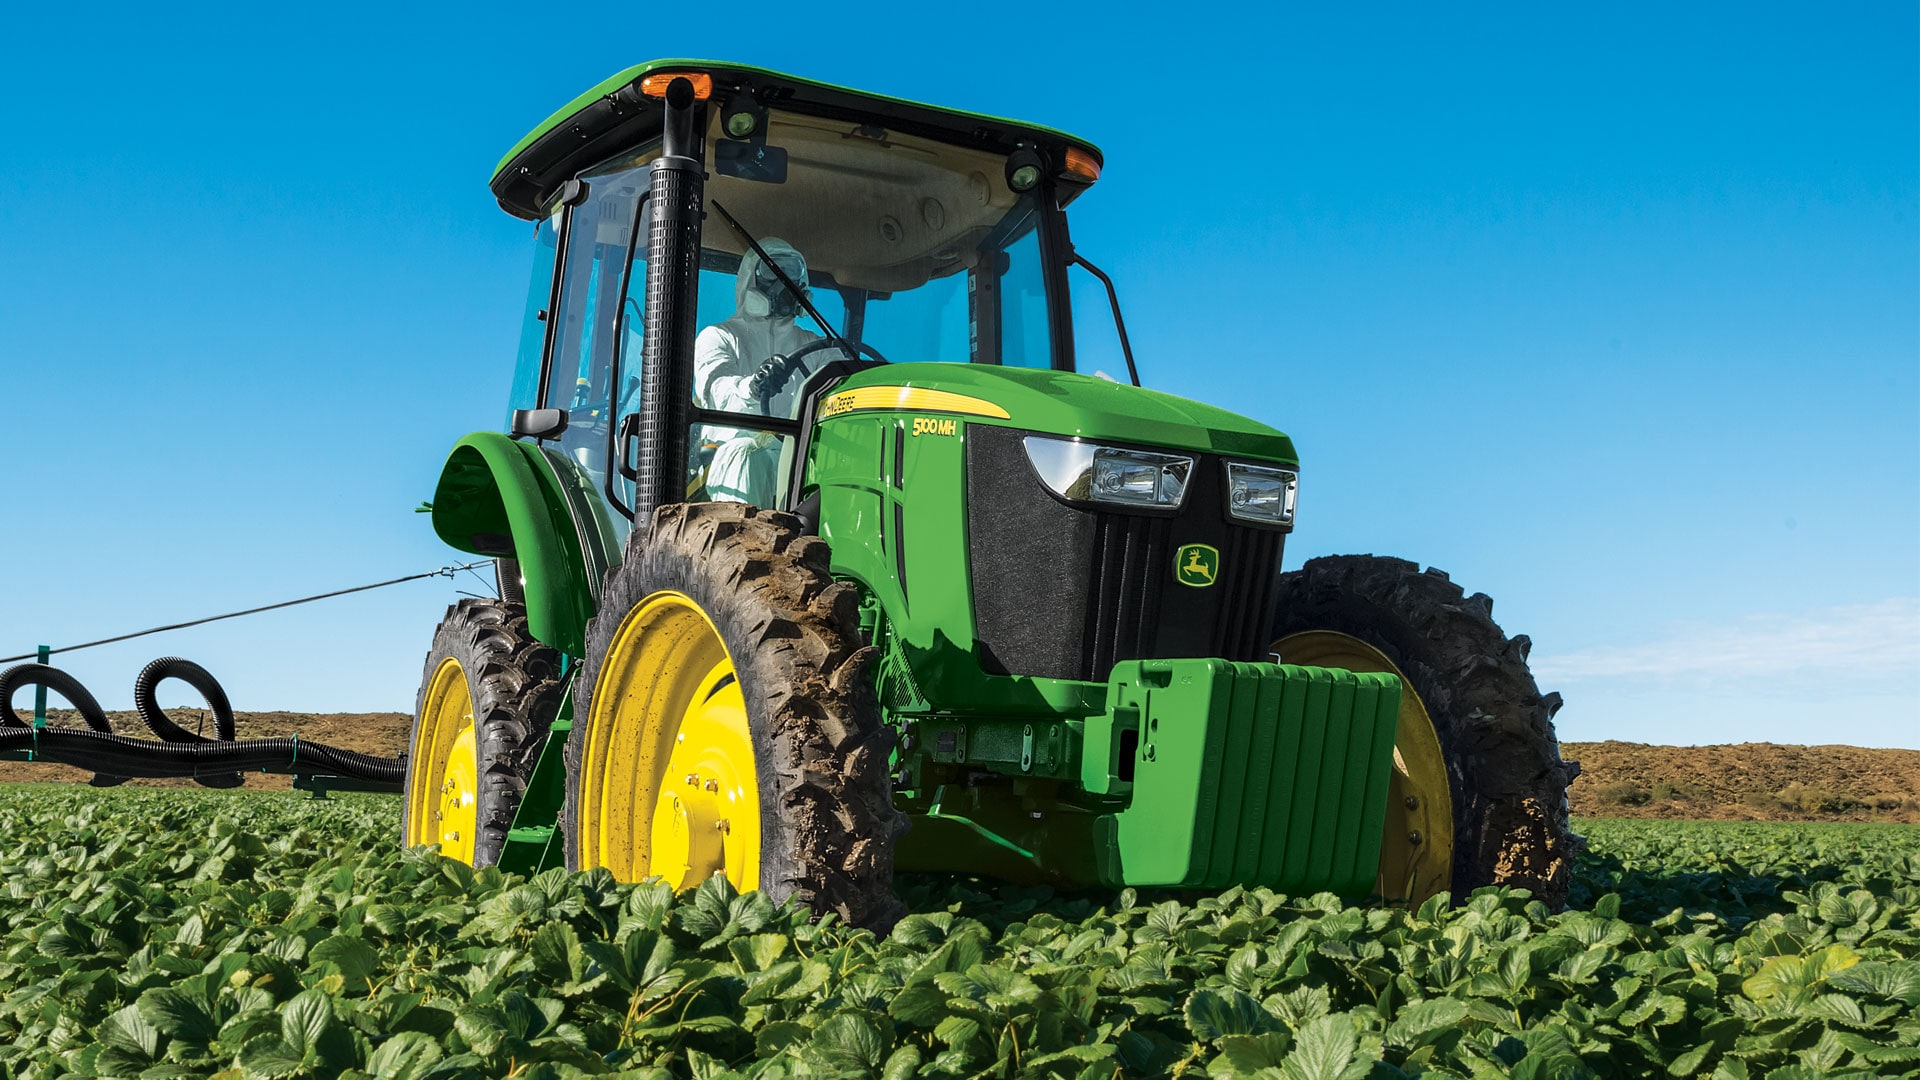 View the Specialty Tractors